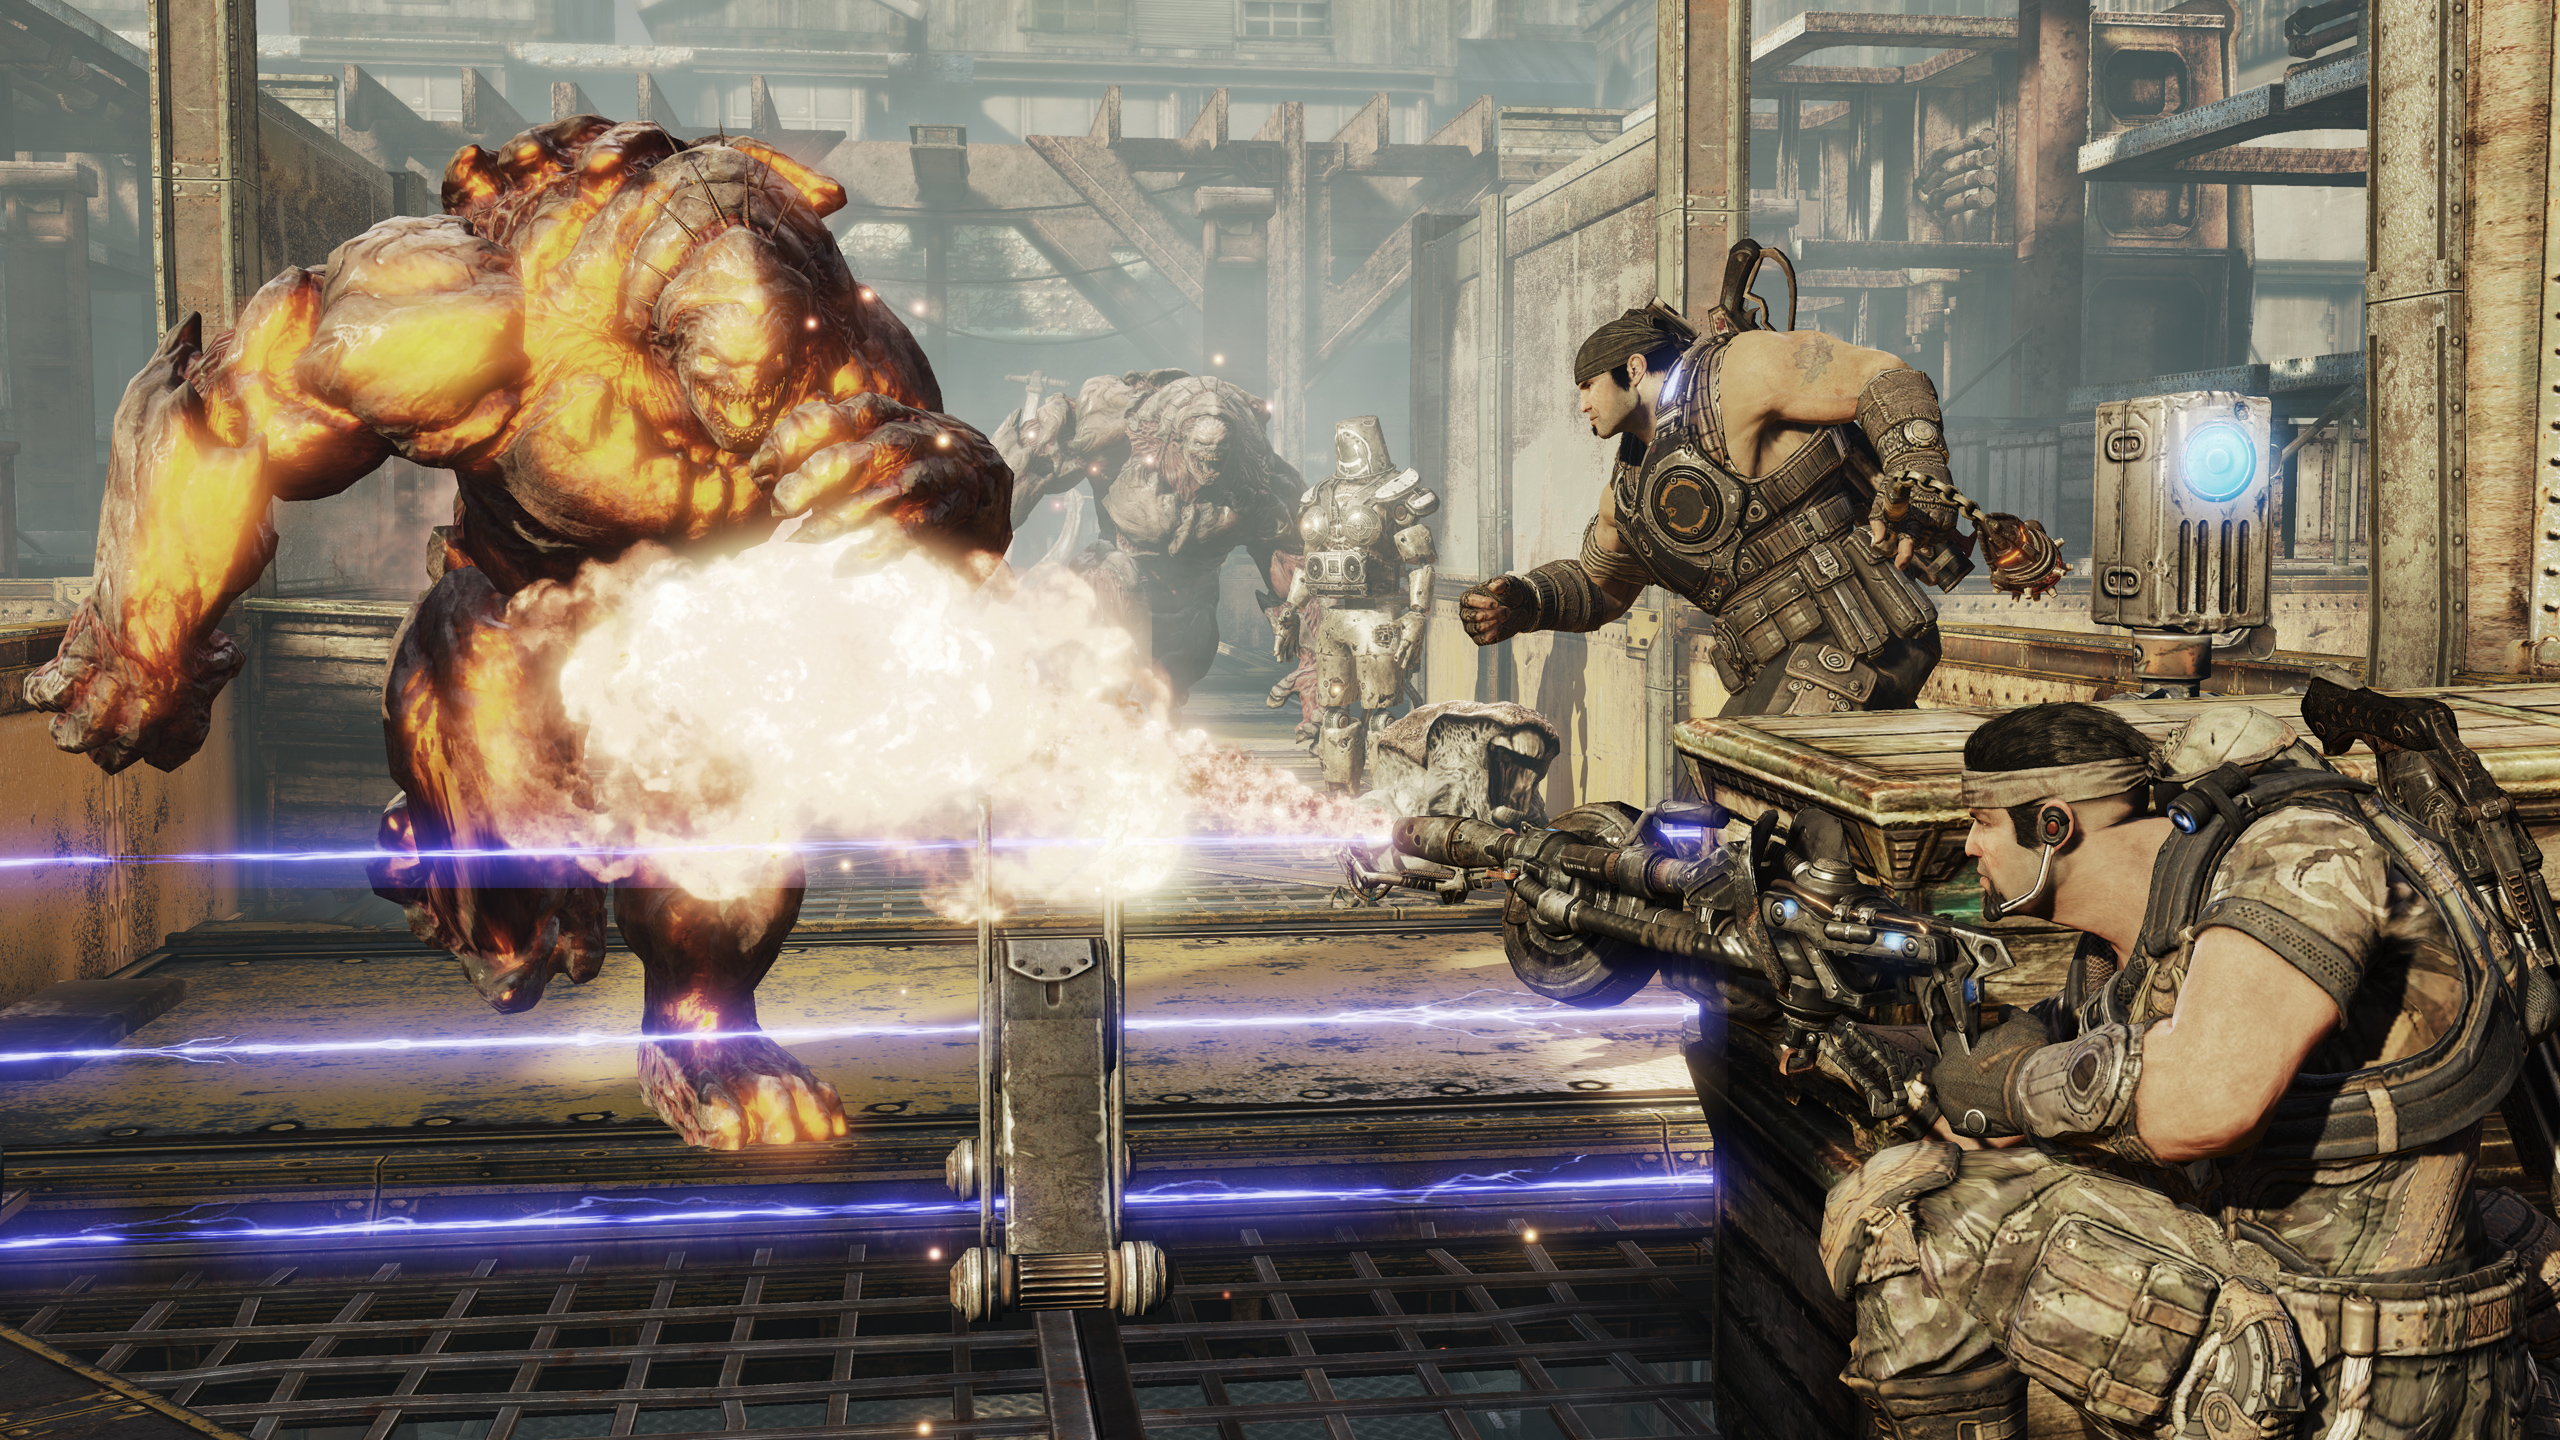 VG-Reloaded Review: Gears of War 3 (Xbox 360) | Video Games